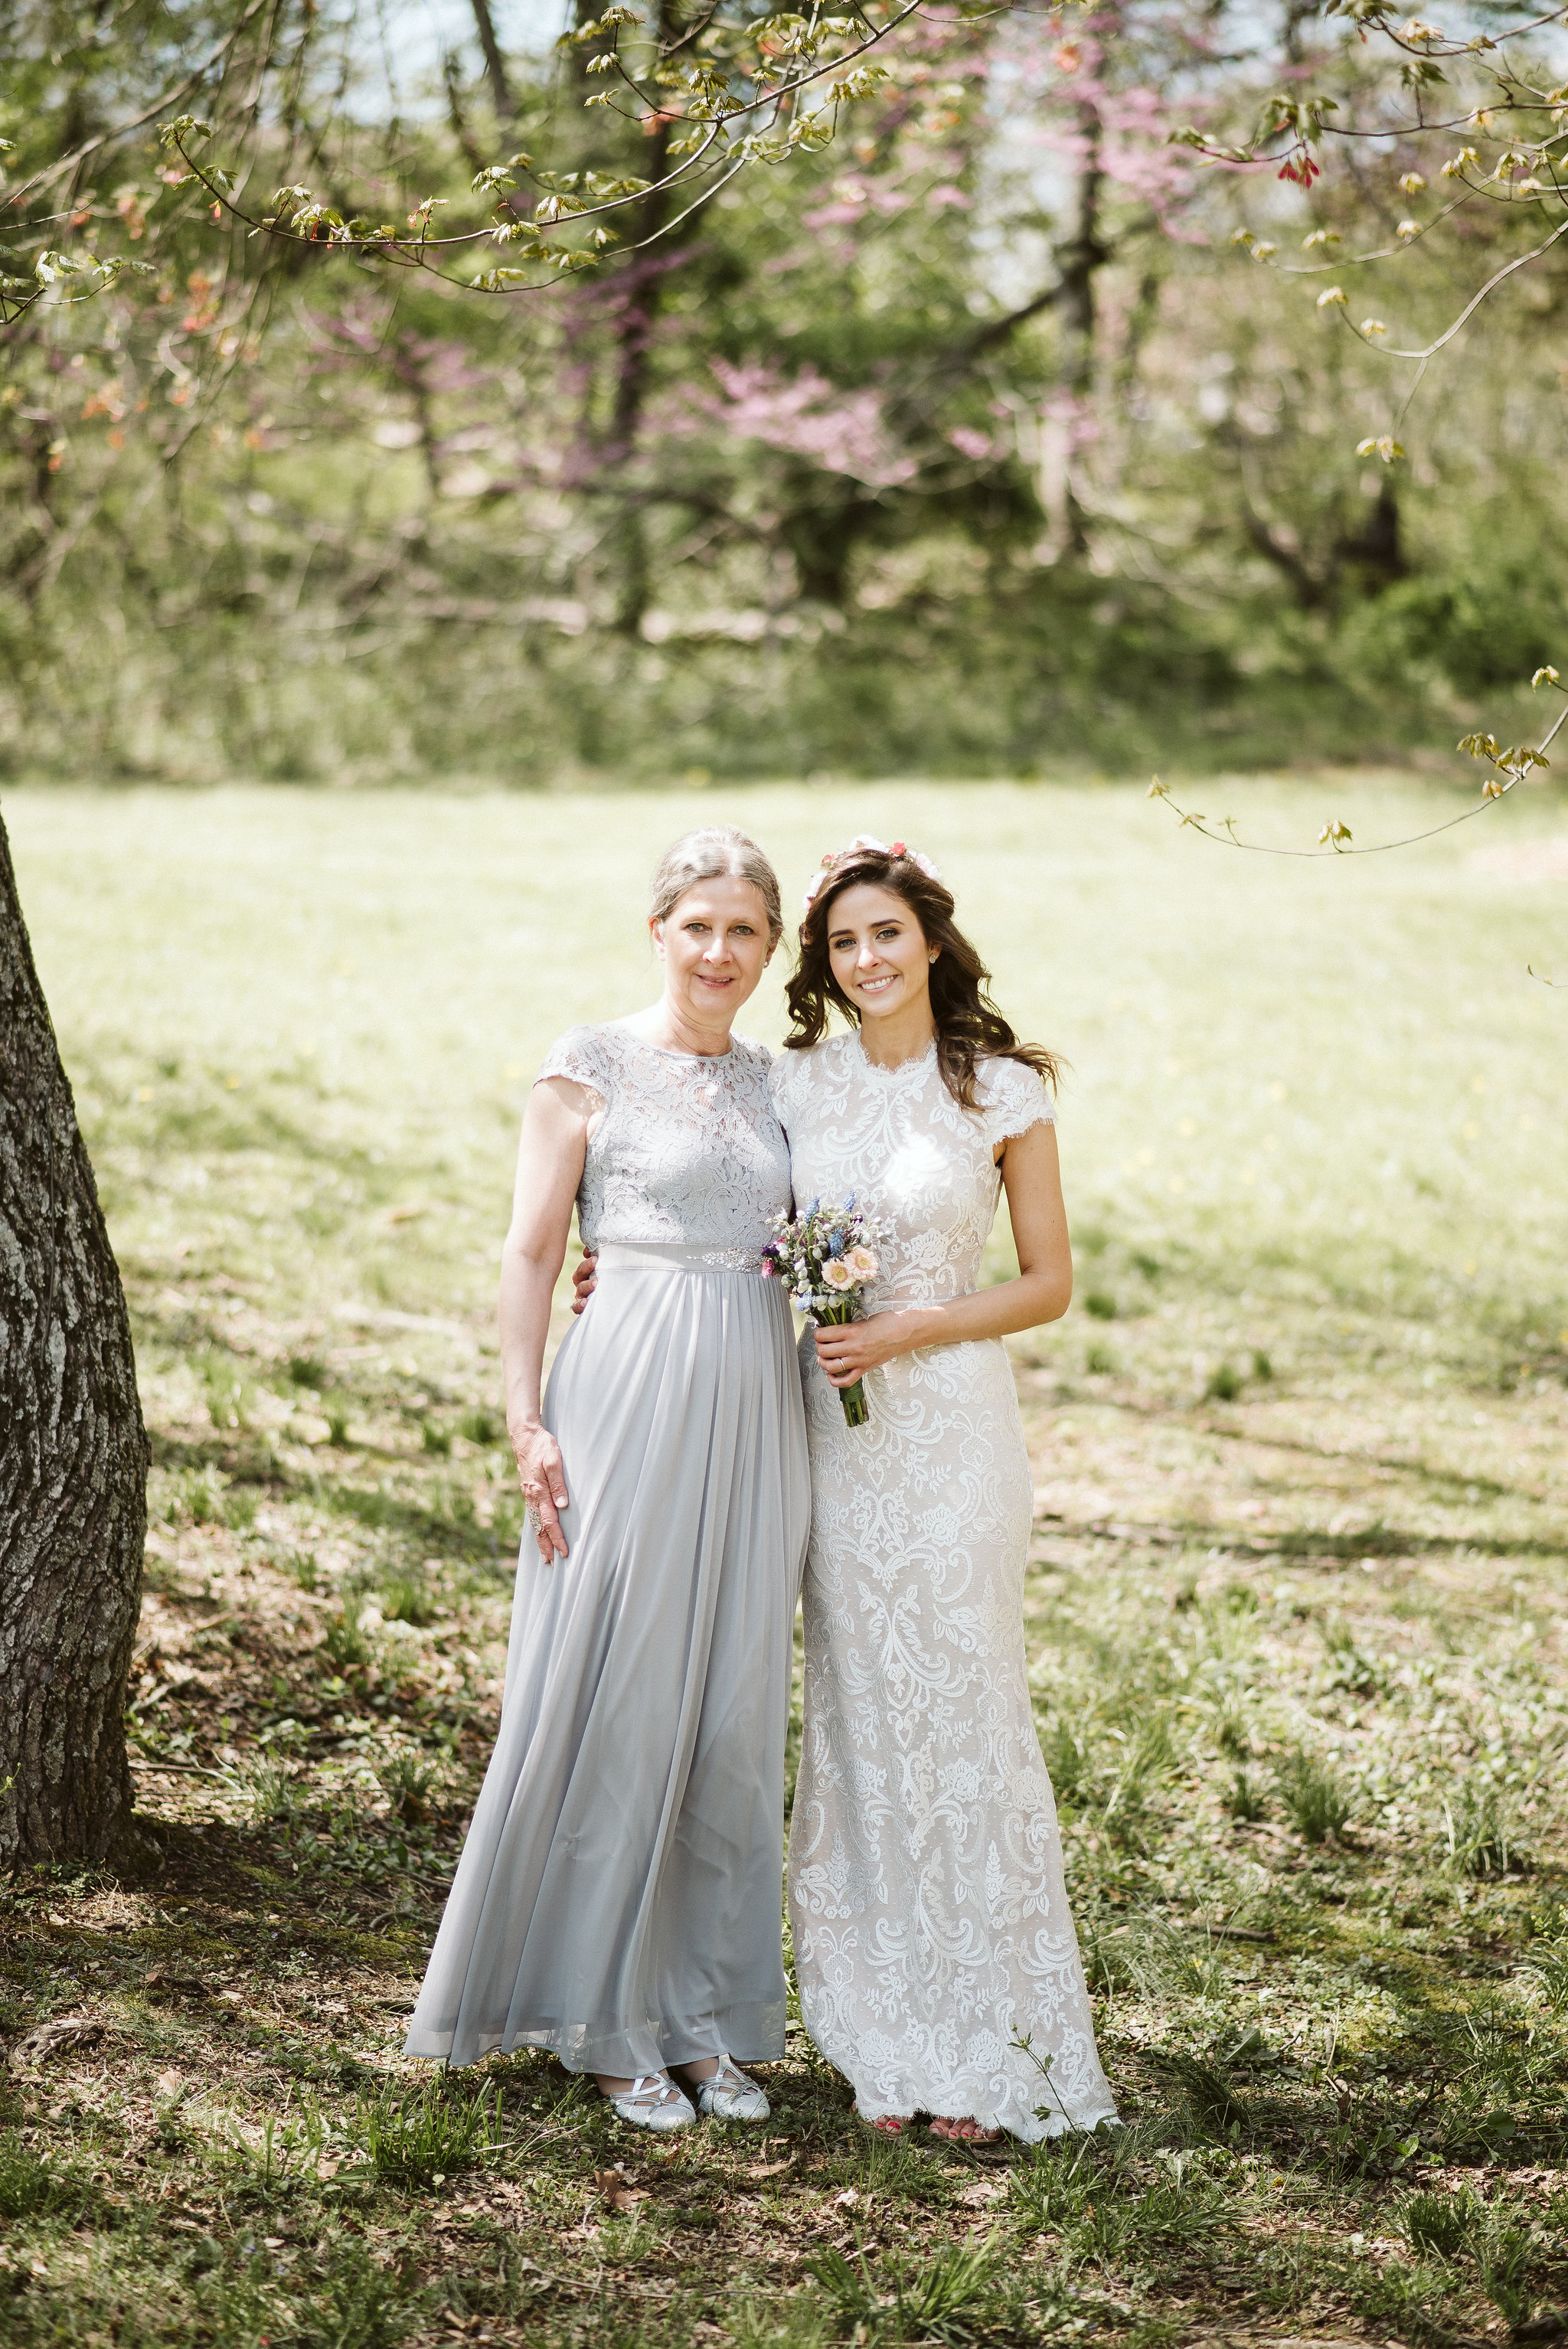 Spring Outdoor Wedding, Park, Baltimore Wedding Photographer, DIY, Classic, Upcycled, Garden Party, Romantic, Portrait of Bride with Mother of the Bride, BHLDN Wedding Dress, Flower Crown